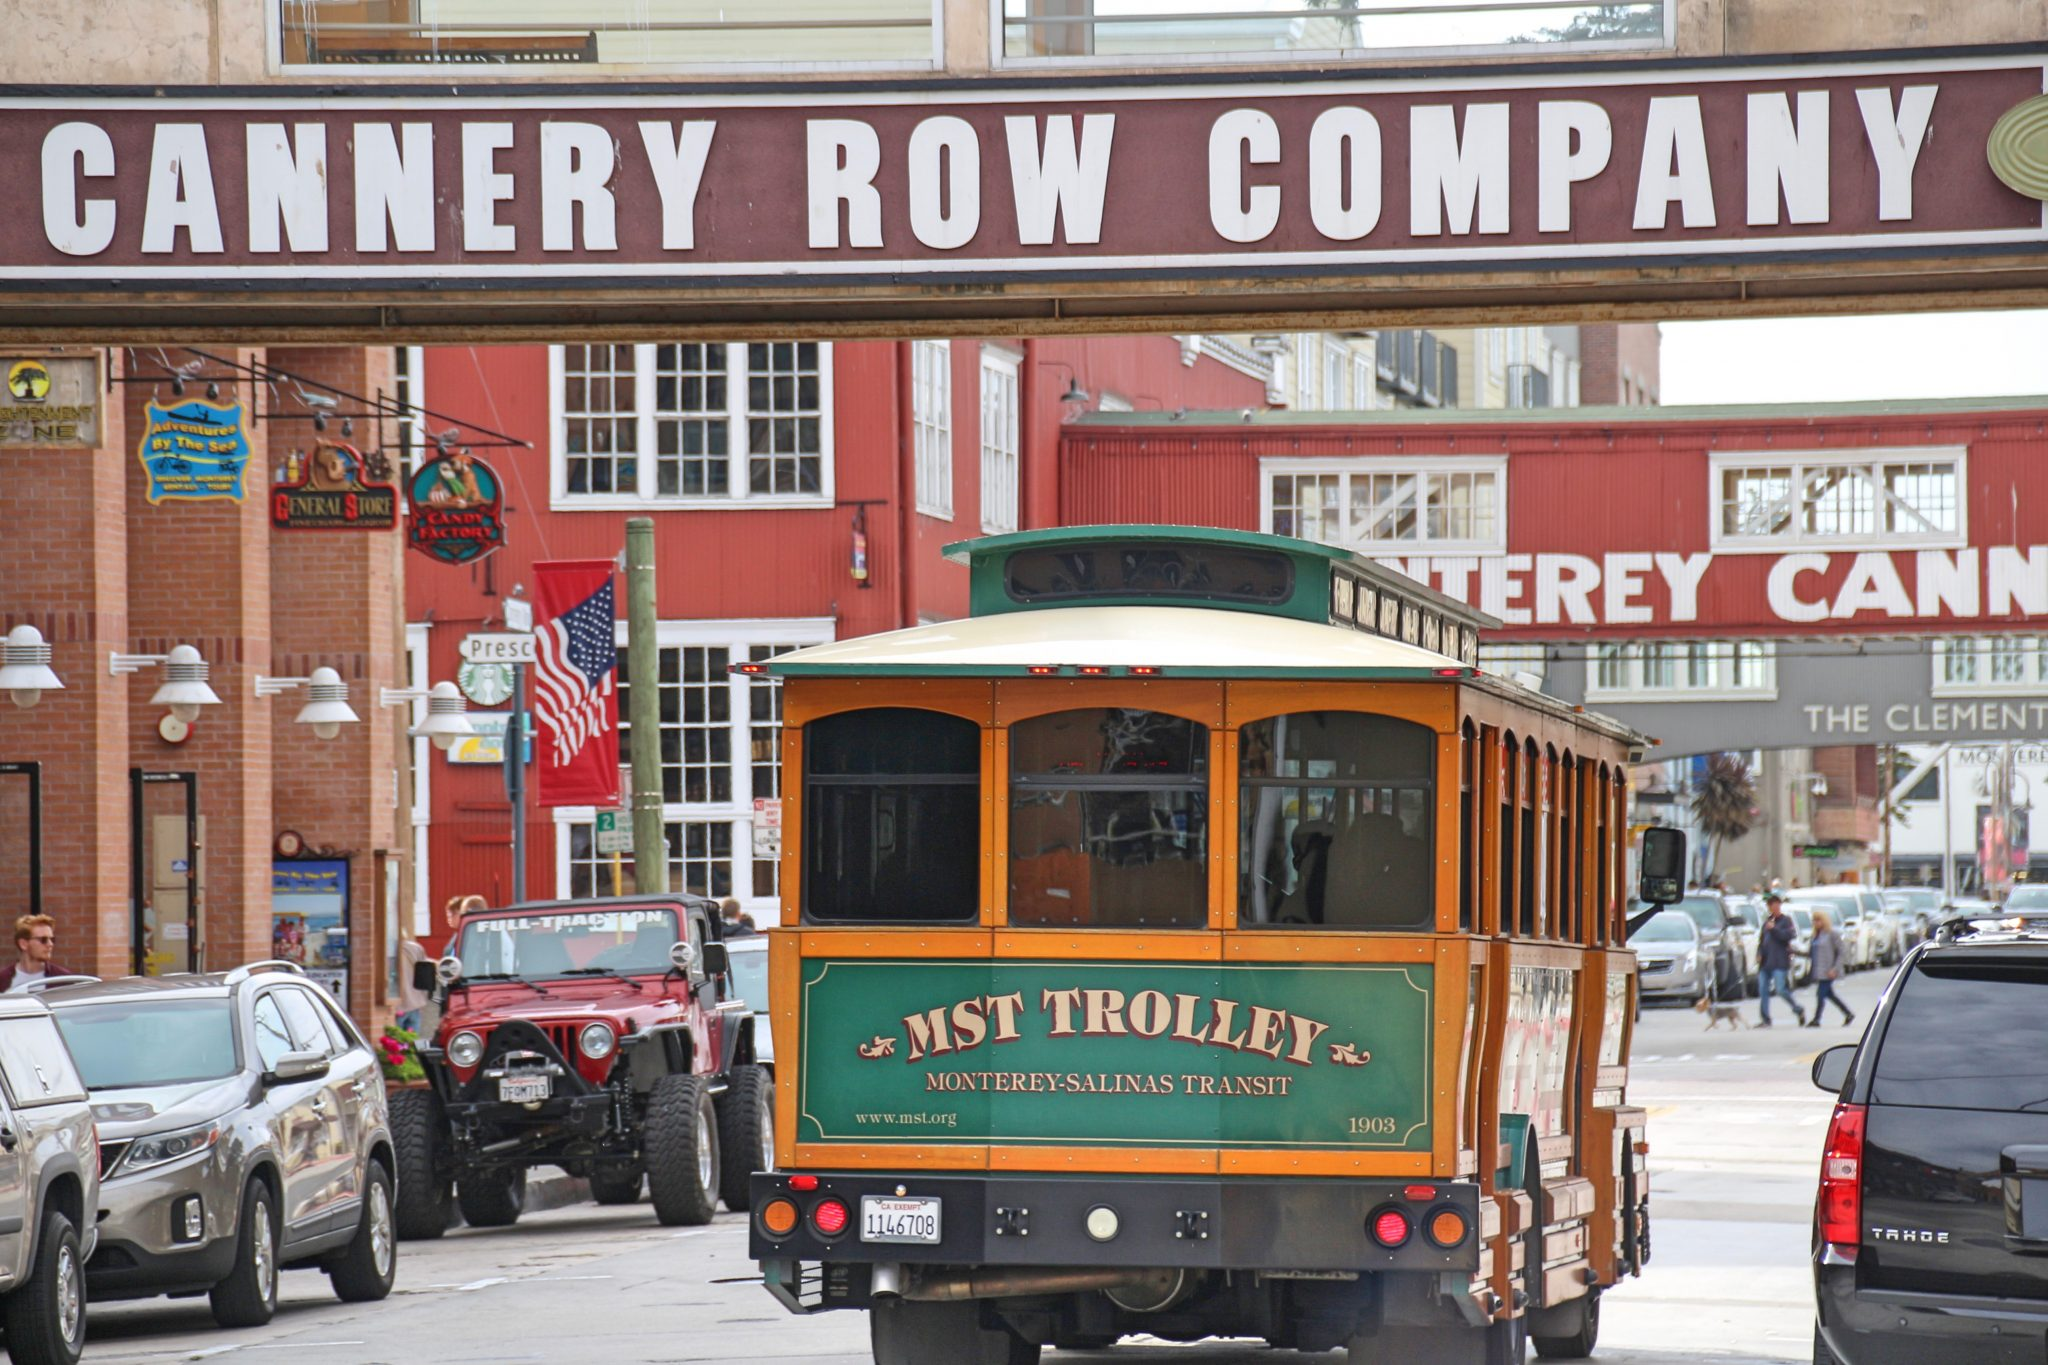 Trolley Bus on Cannery Row, Monterey, California